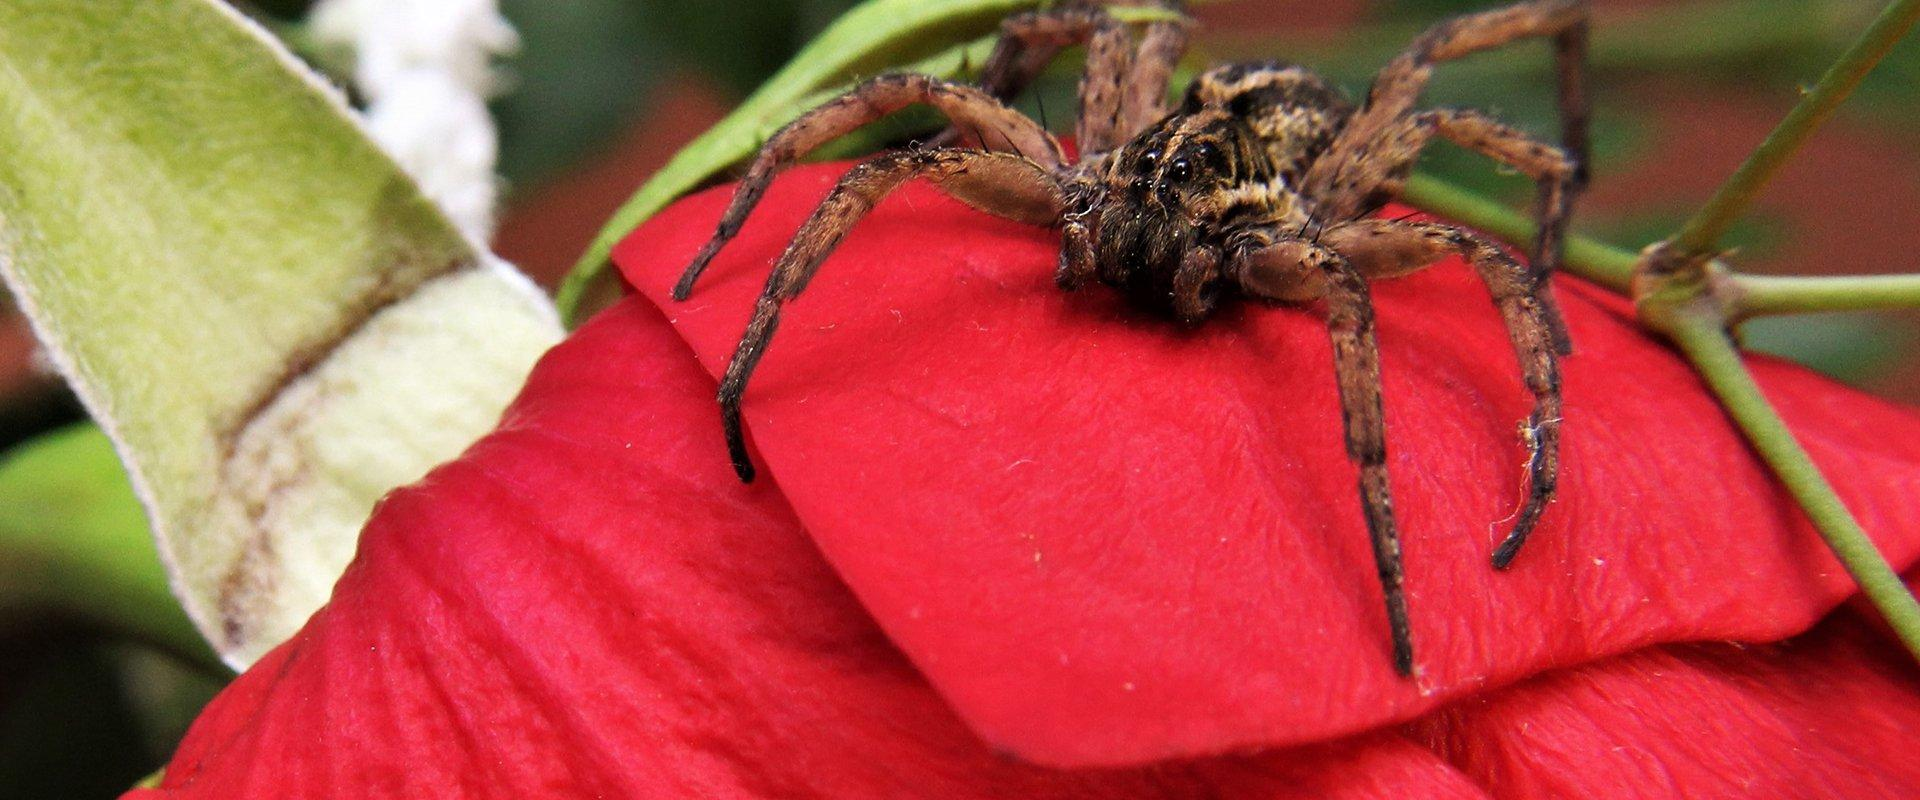 a wolf spider on a bright red rose